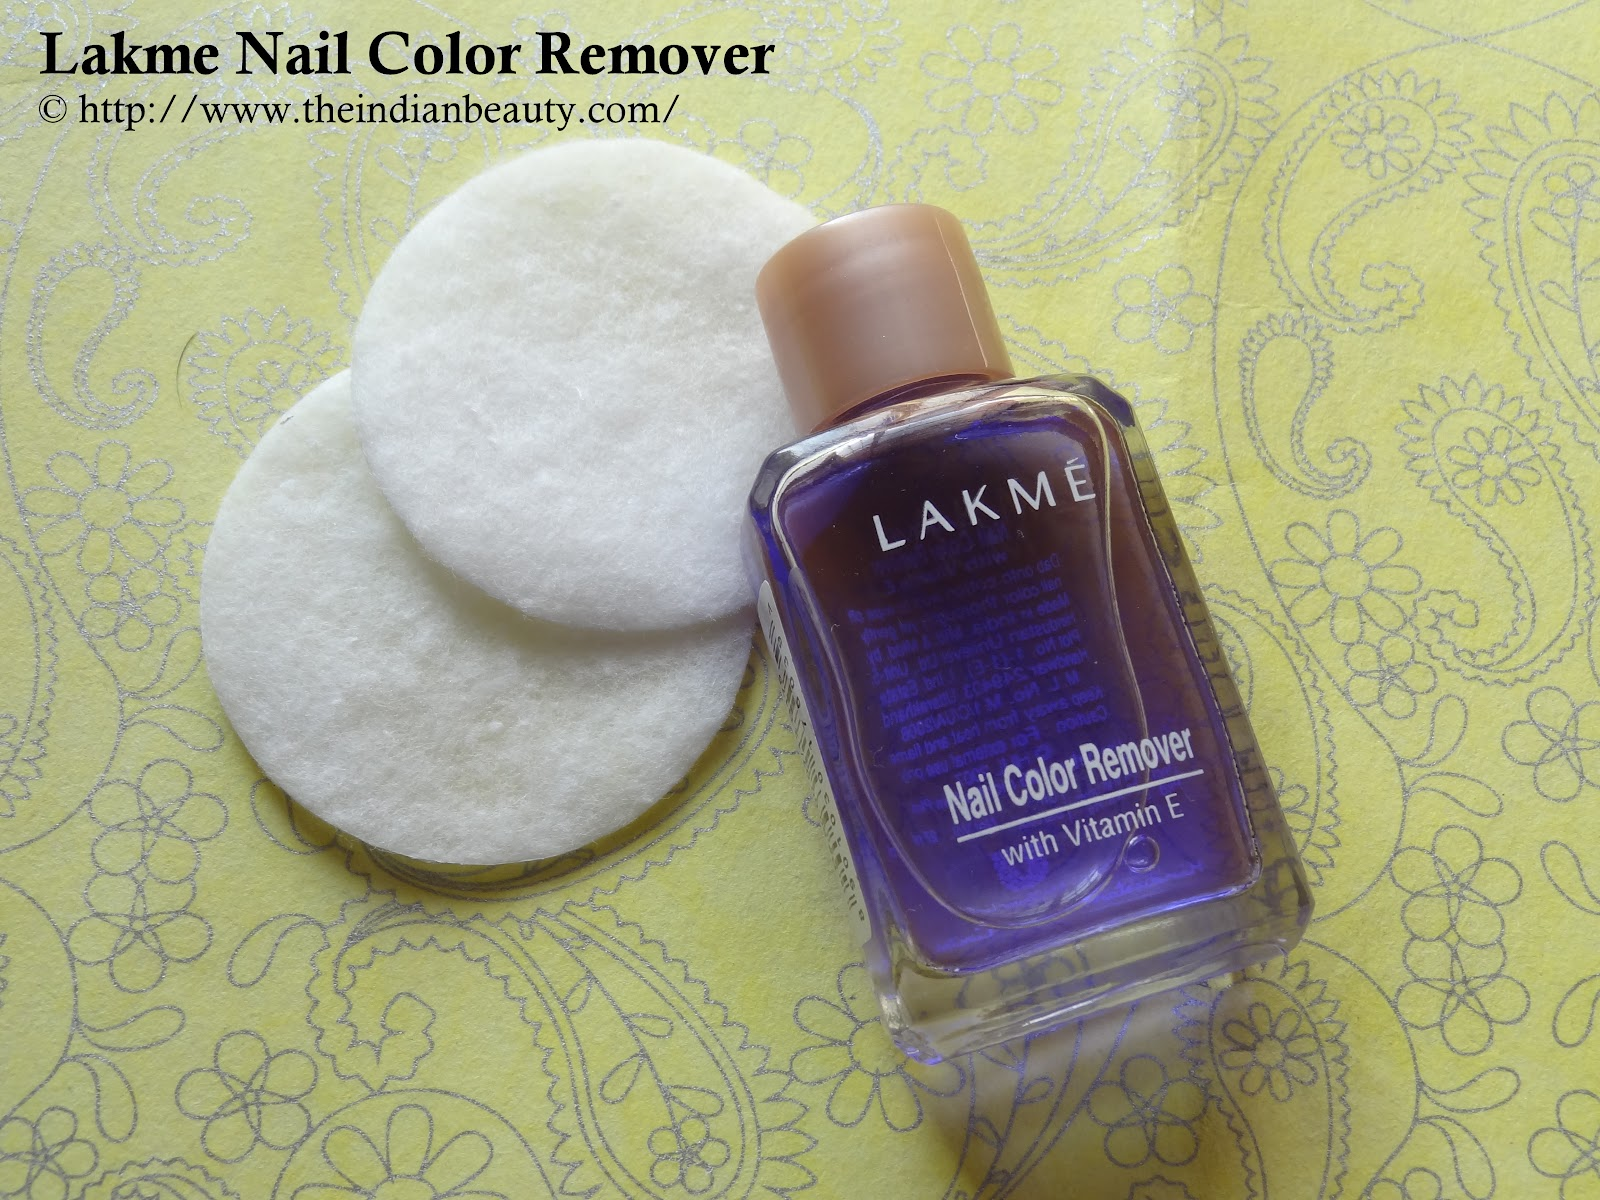 Lakme Nail Color Remover Review Demo The Indian Beauty Blog